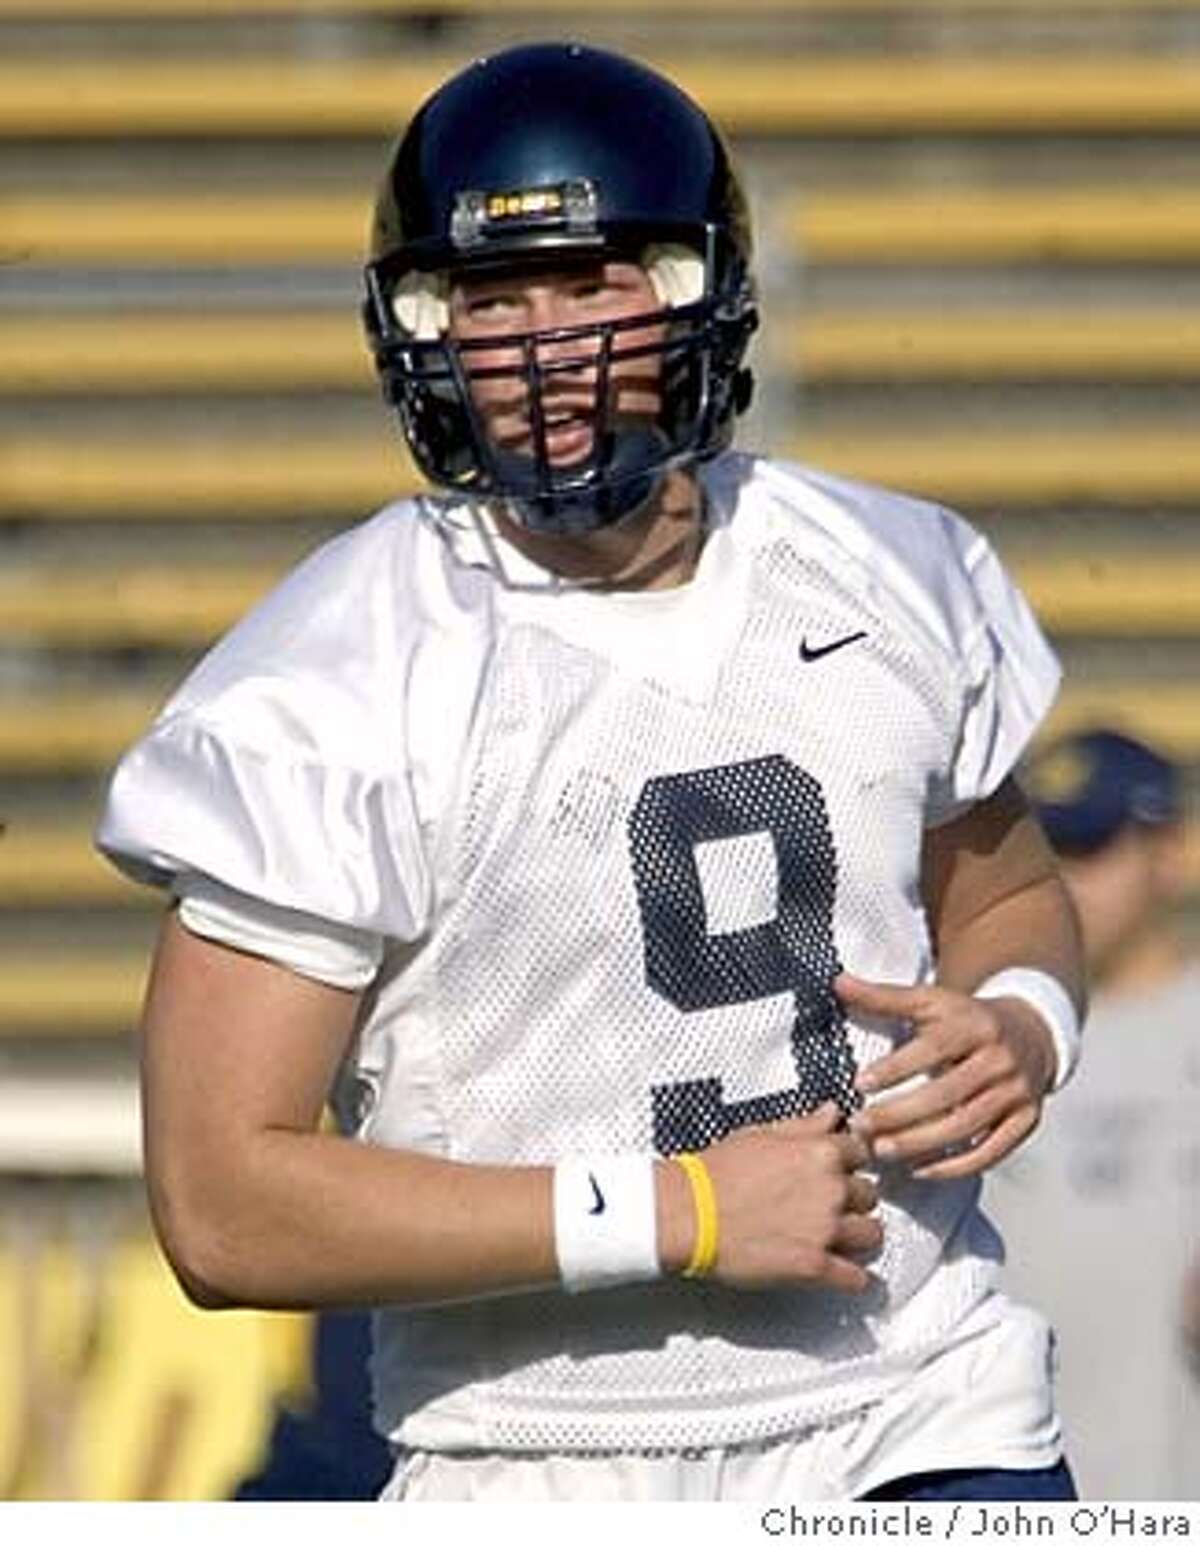 UC BERKELEY, MEMORIAL STADIUM Spring football practice. #9, NATHAN LONGSHORE, QB photo by: John O'Hara